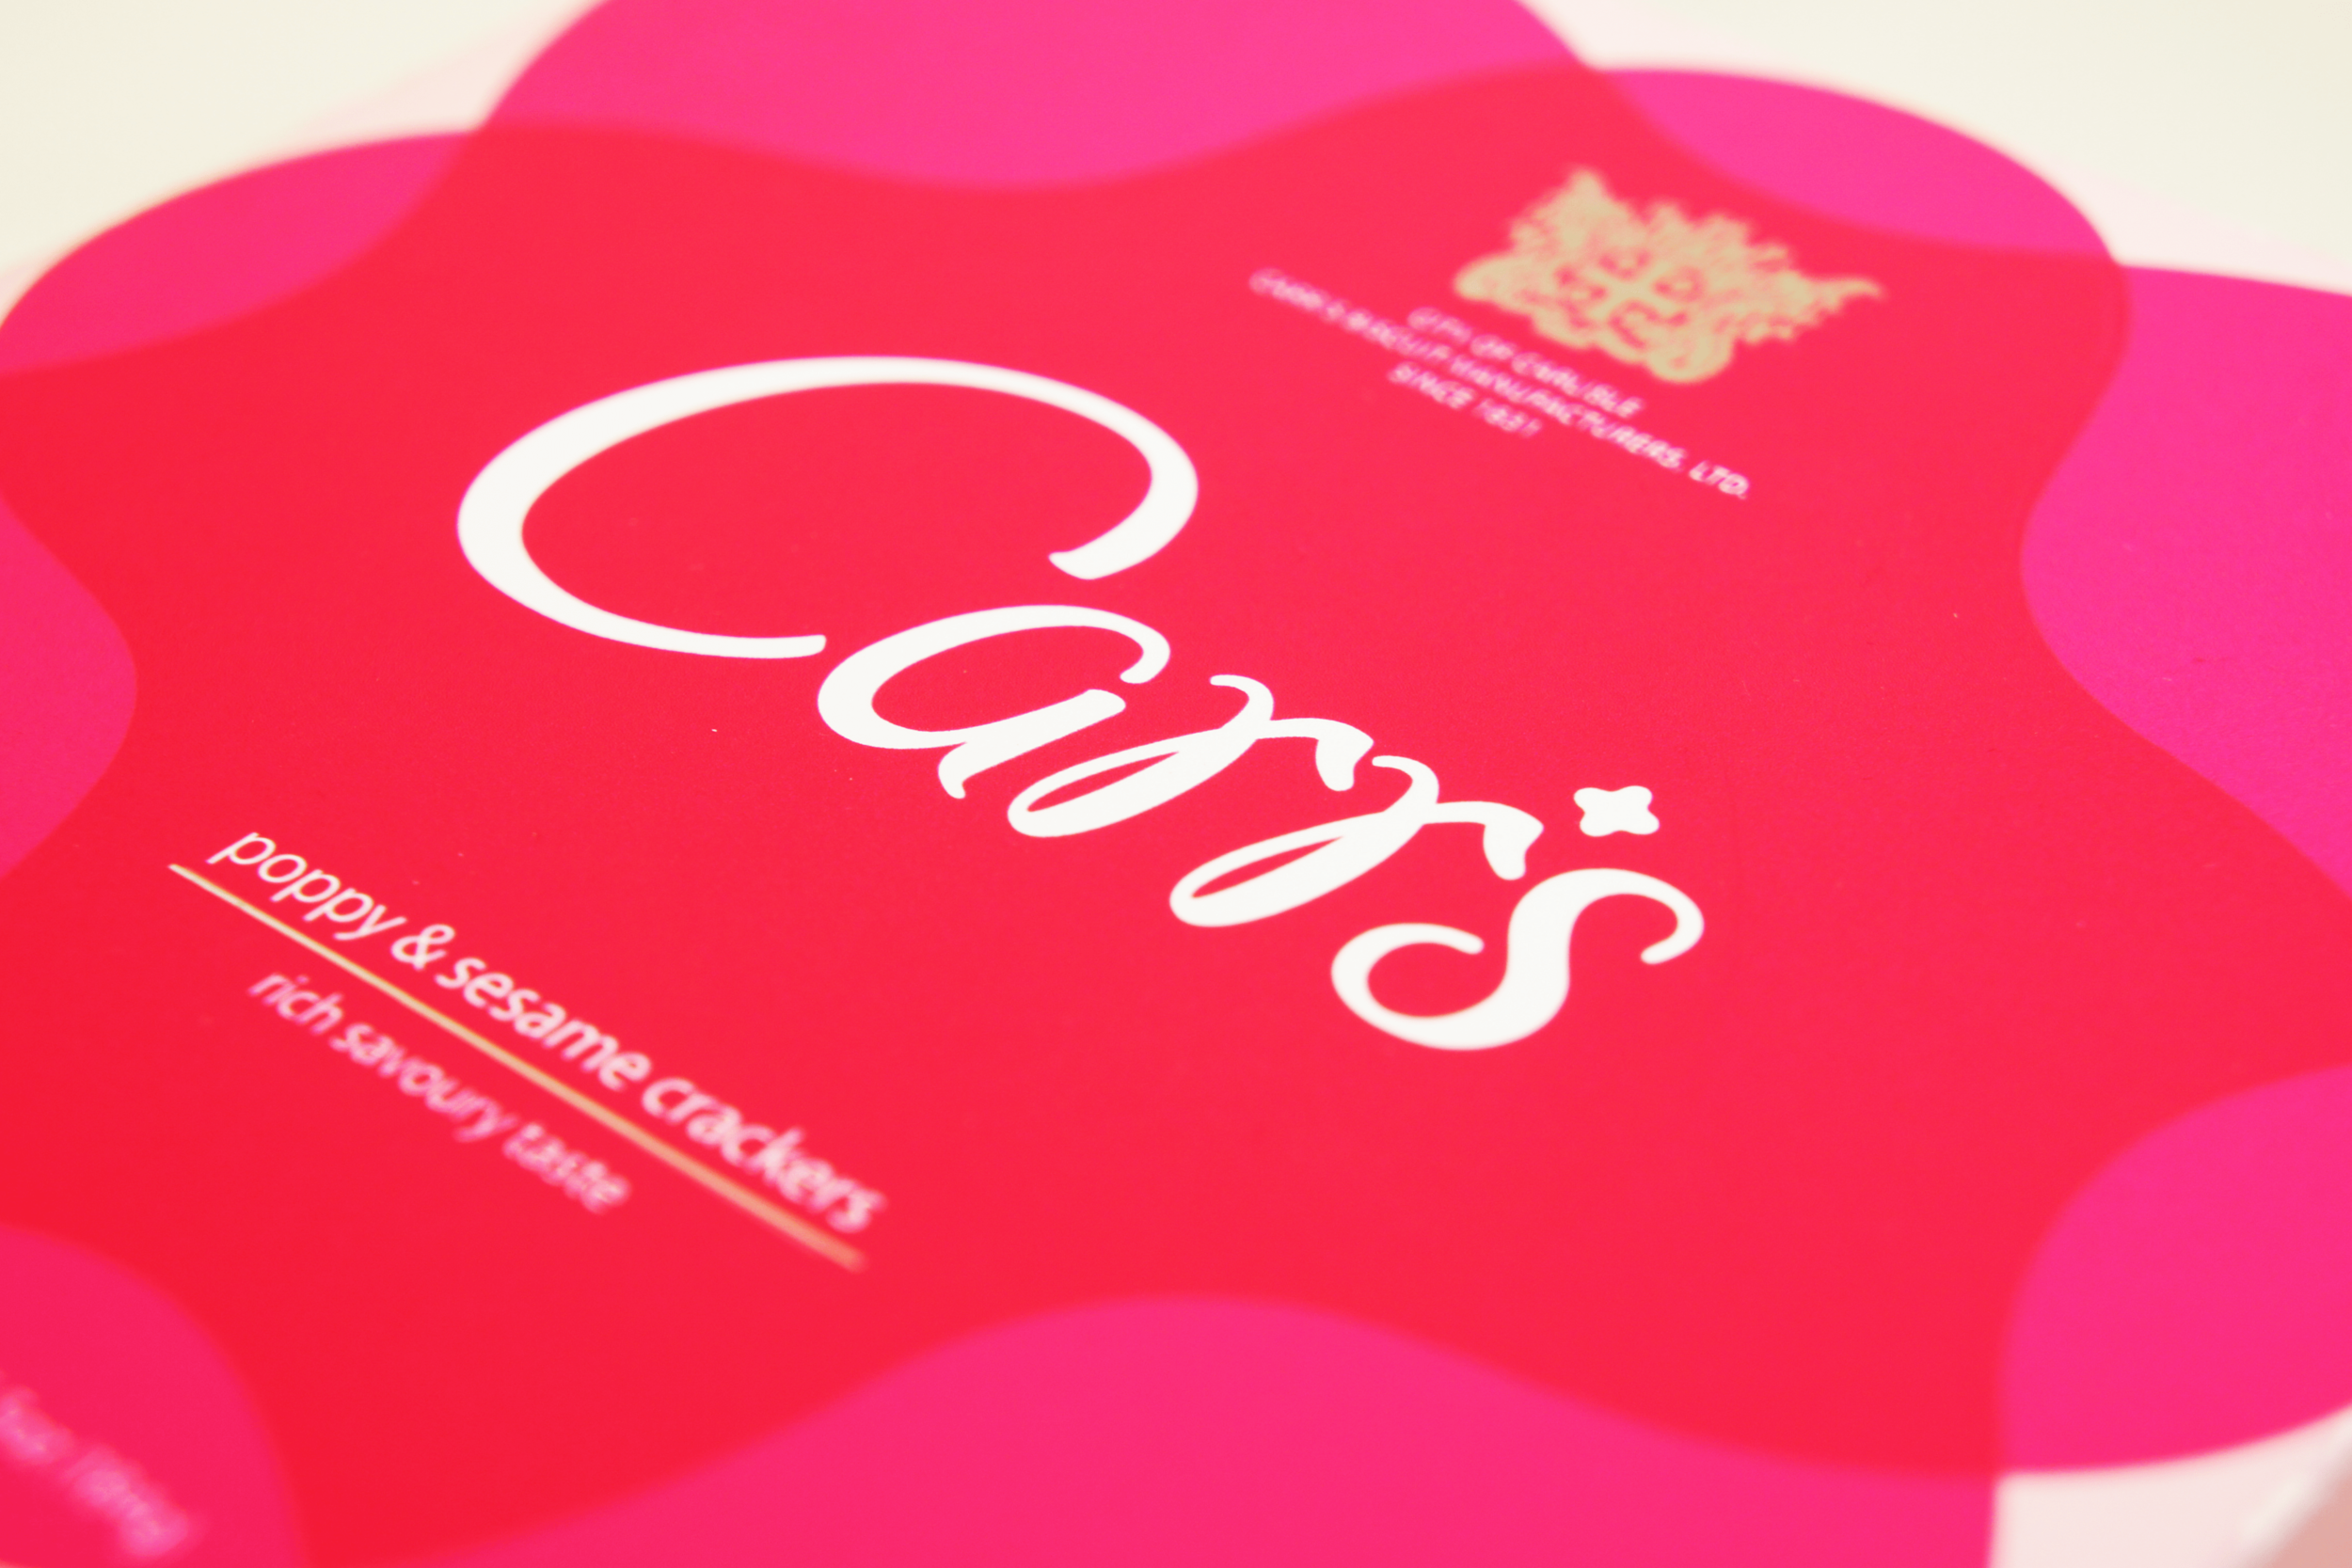 Redesign-Carr's-Biscuits-Redesign-detail.png